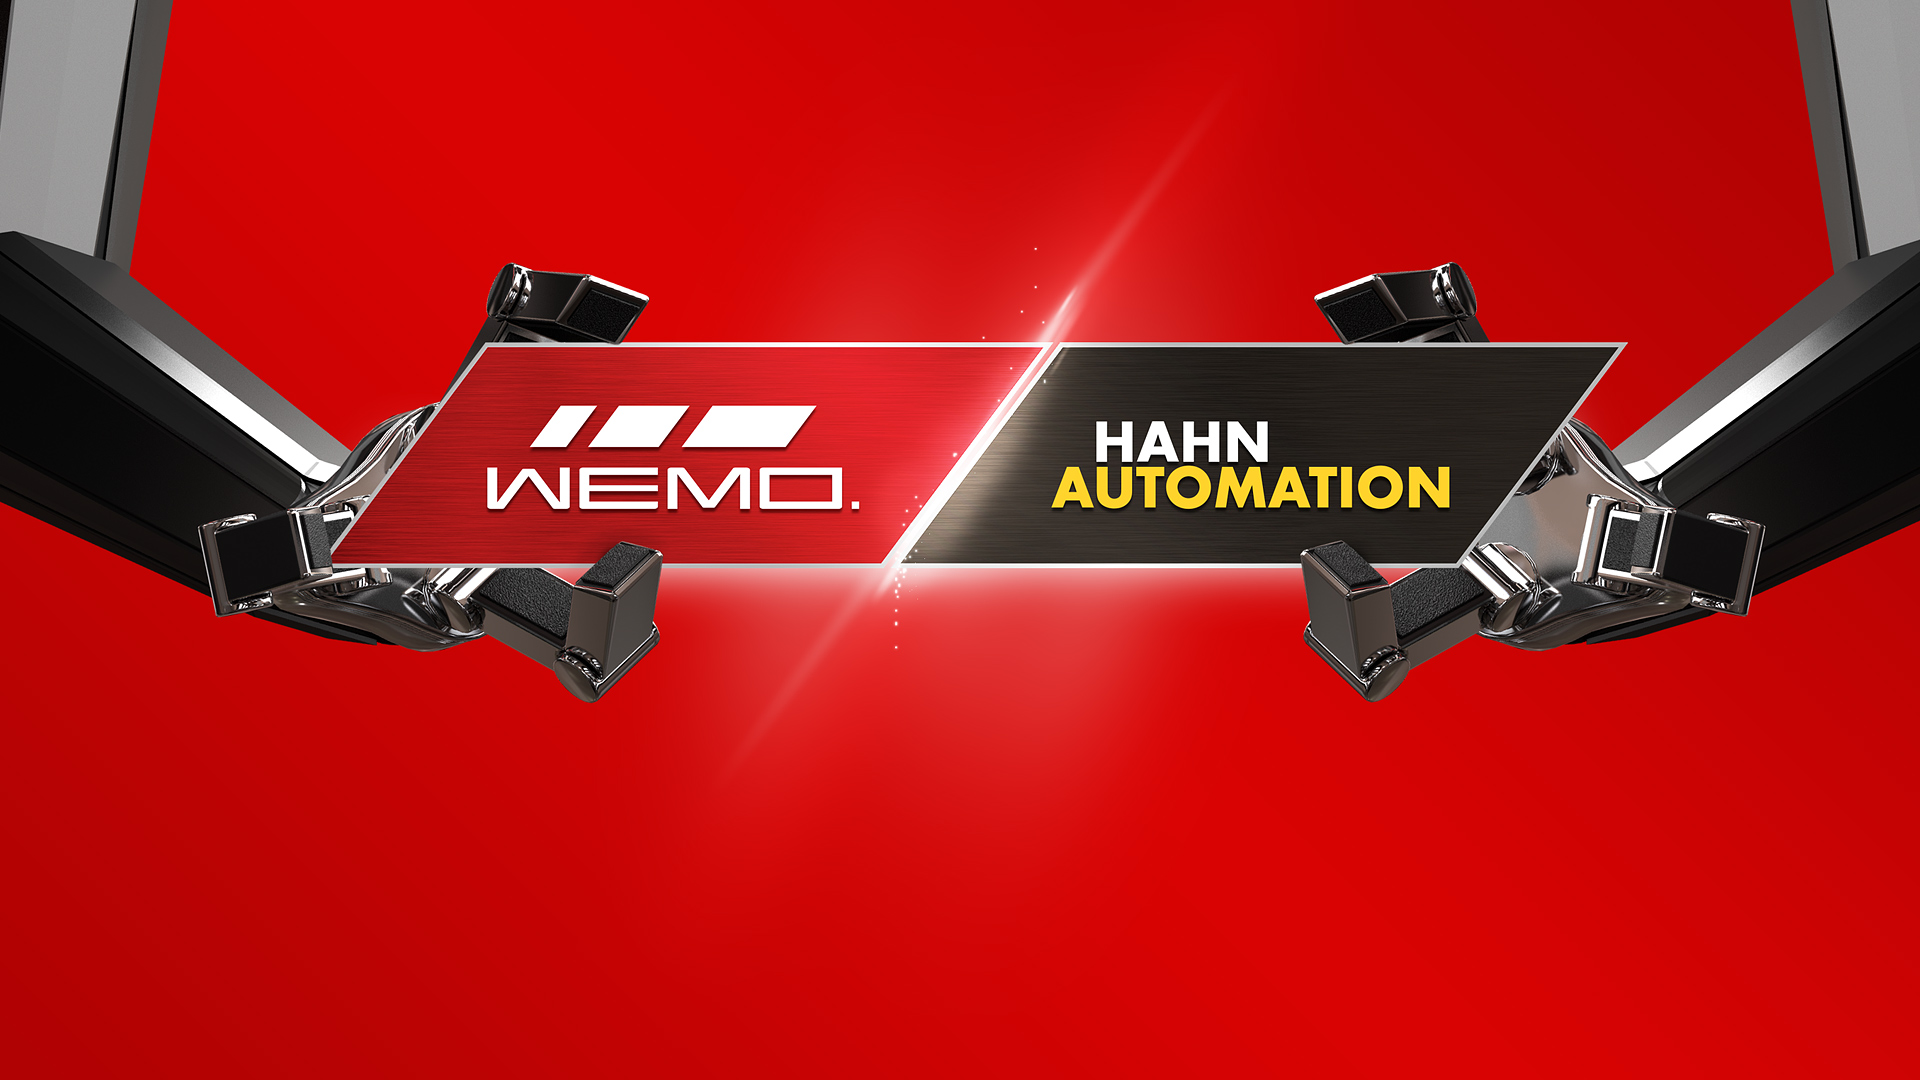 WEMO & HAHN Joins